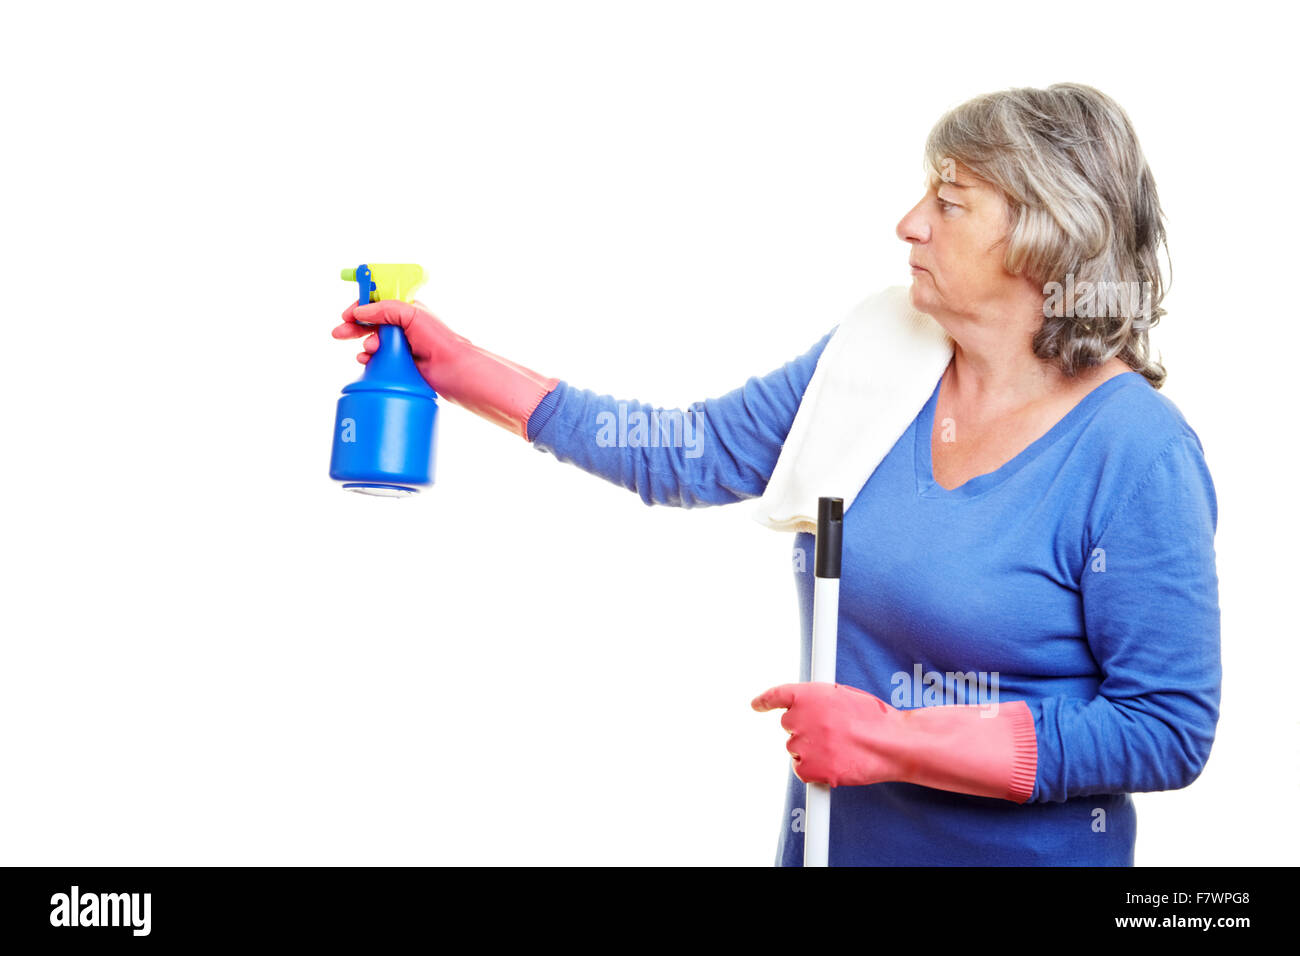 Elderly cleaning lady using a spray bottle - Stock Image